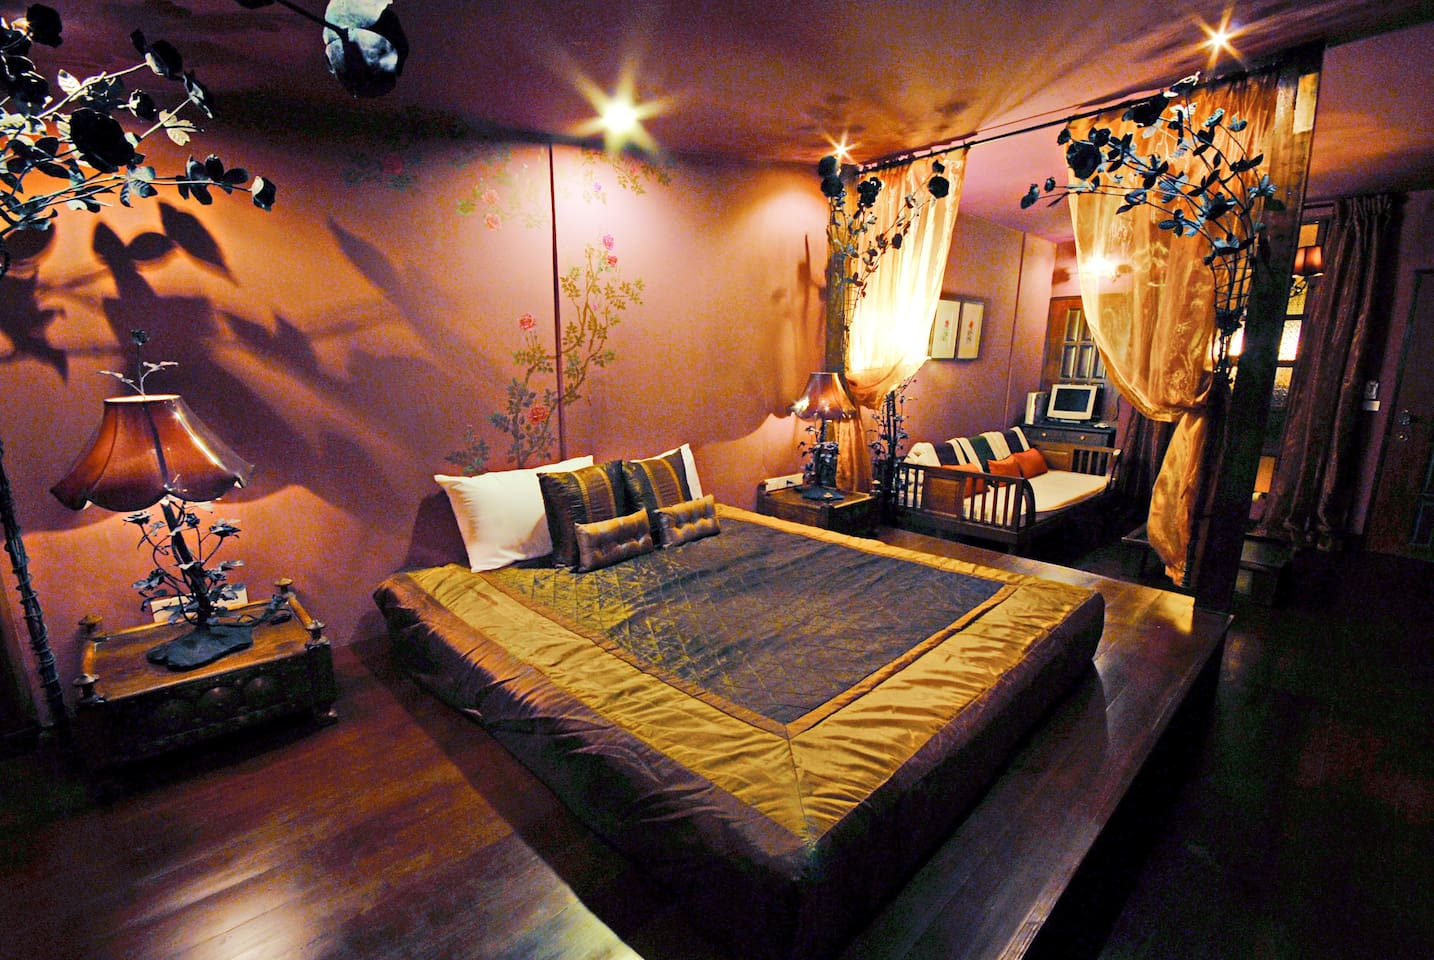 Honeymoon Suite has all Thai style antiques